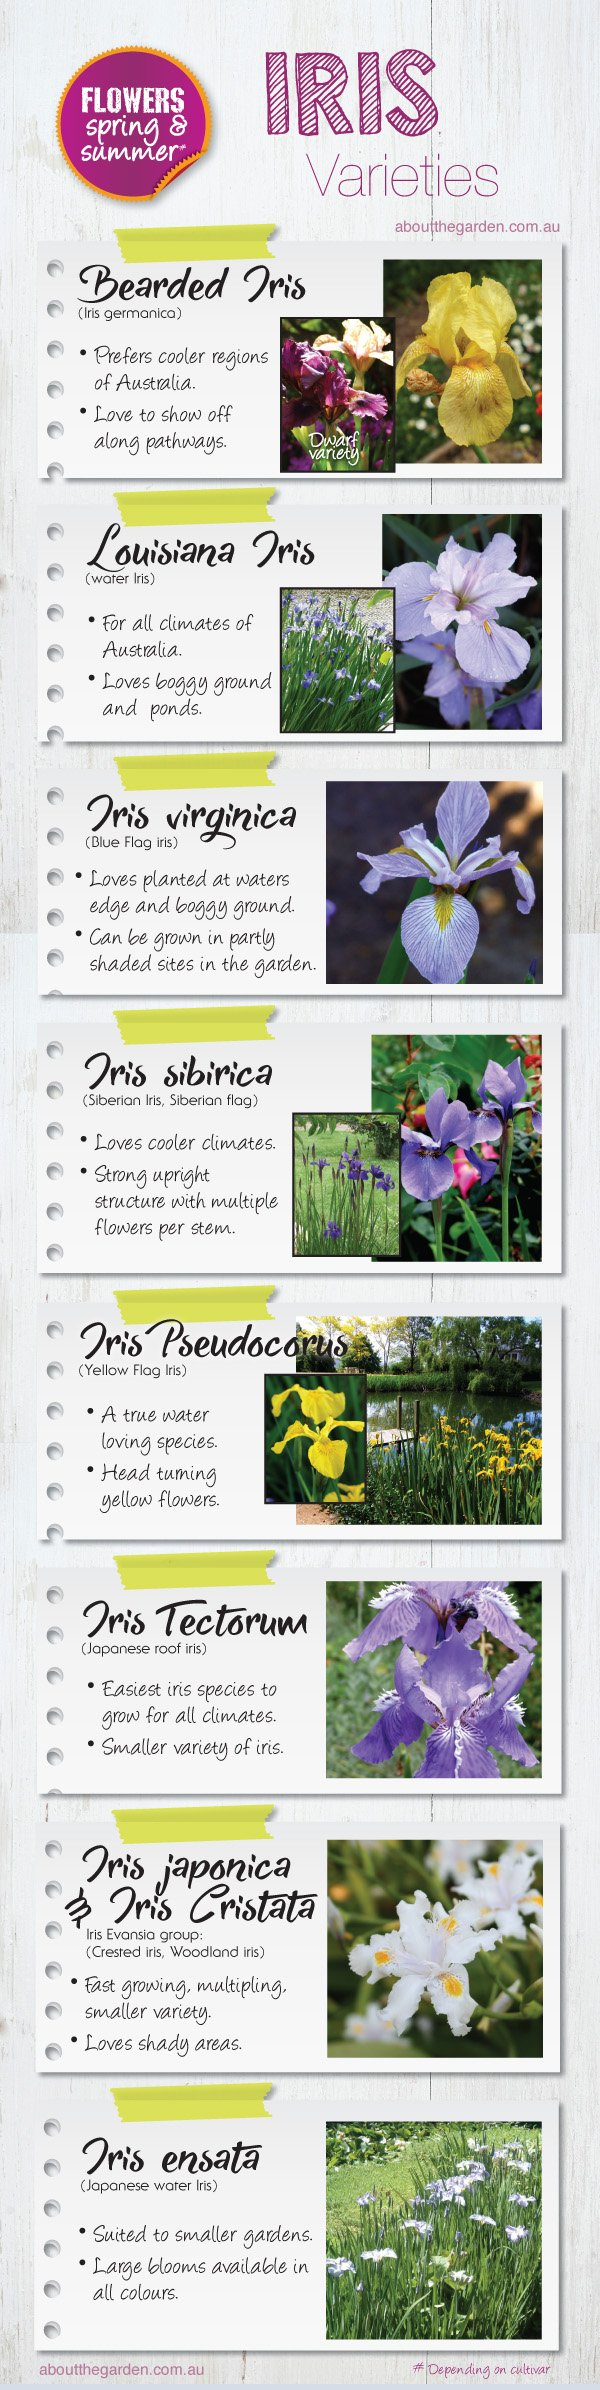 Iris varieties for Australian gardens #aboutthegardenmagazine.in